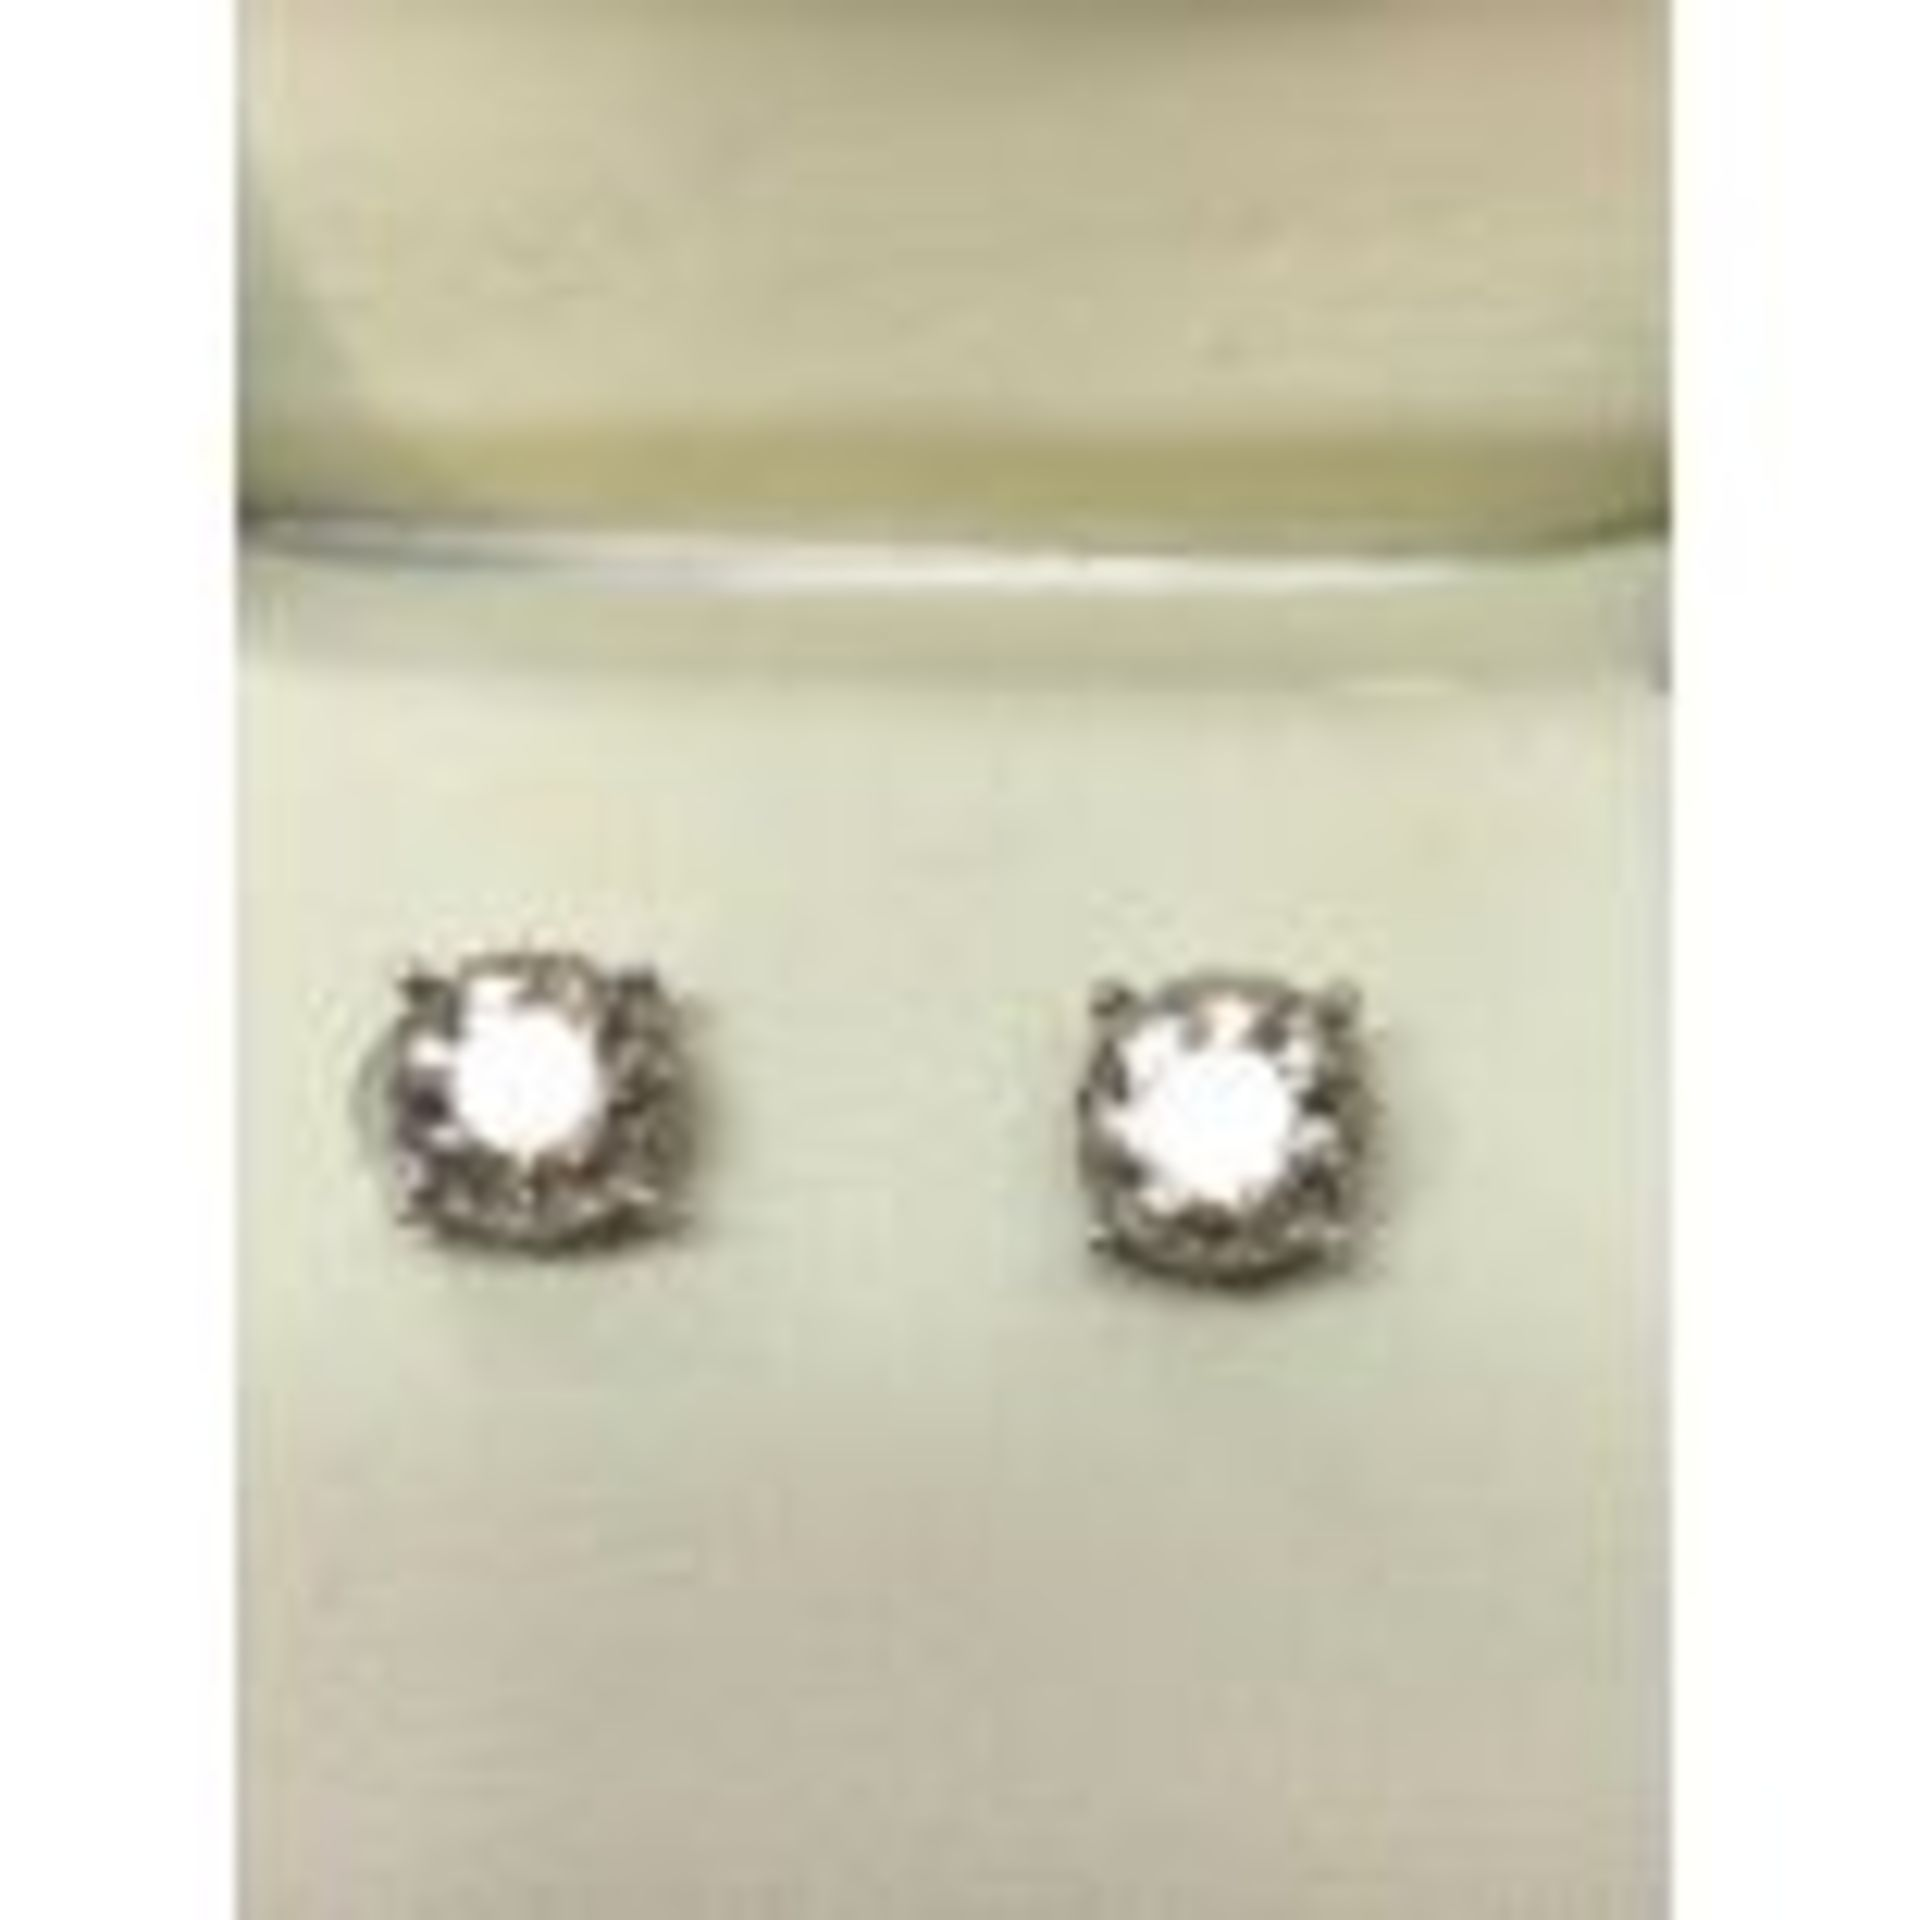 RRP £8,950 18 Carat White Gold Solitaire Diamond Solitaire Earrings, Total Stone Weight 2.06Ct, K